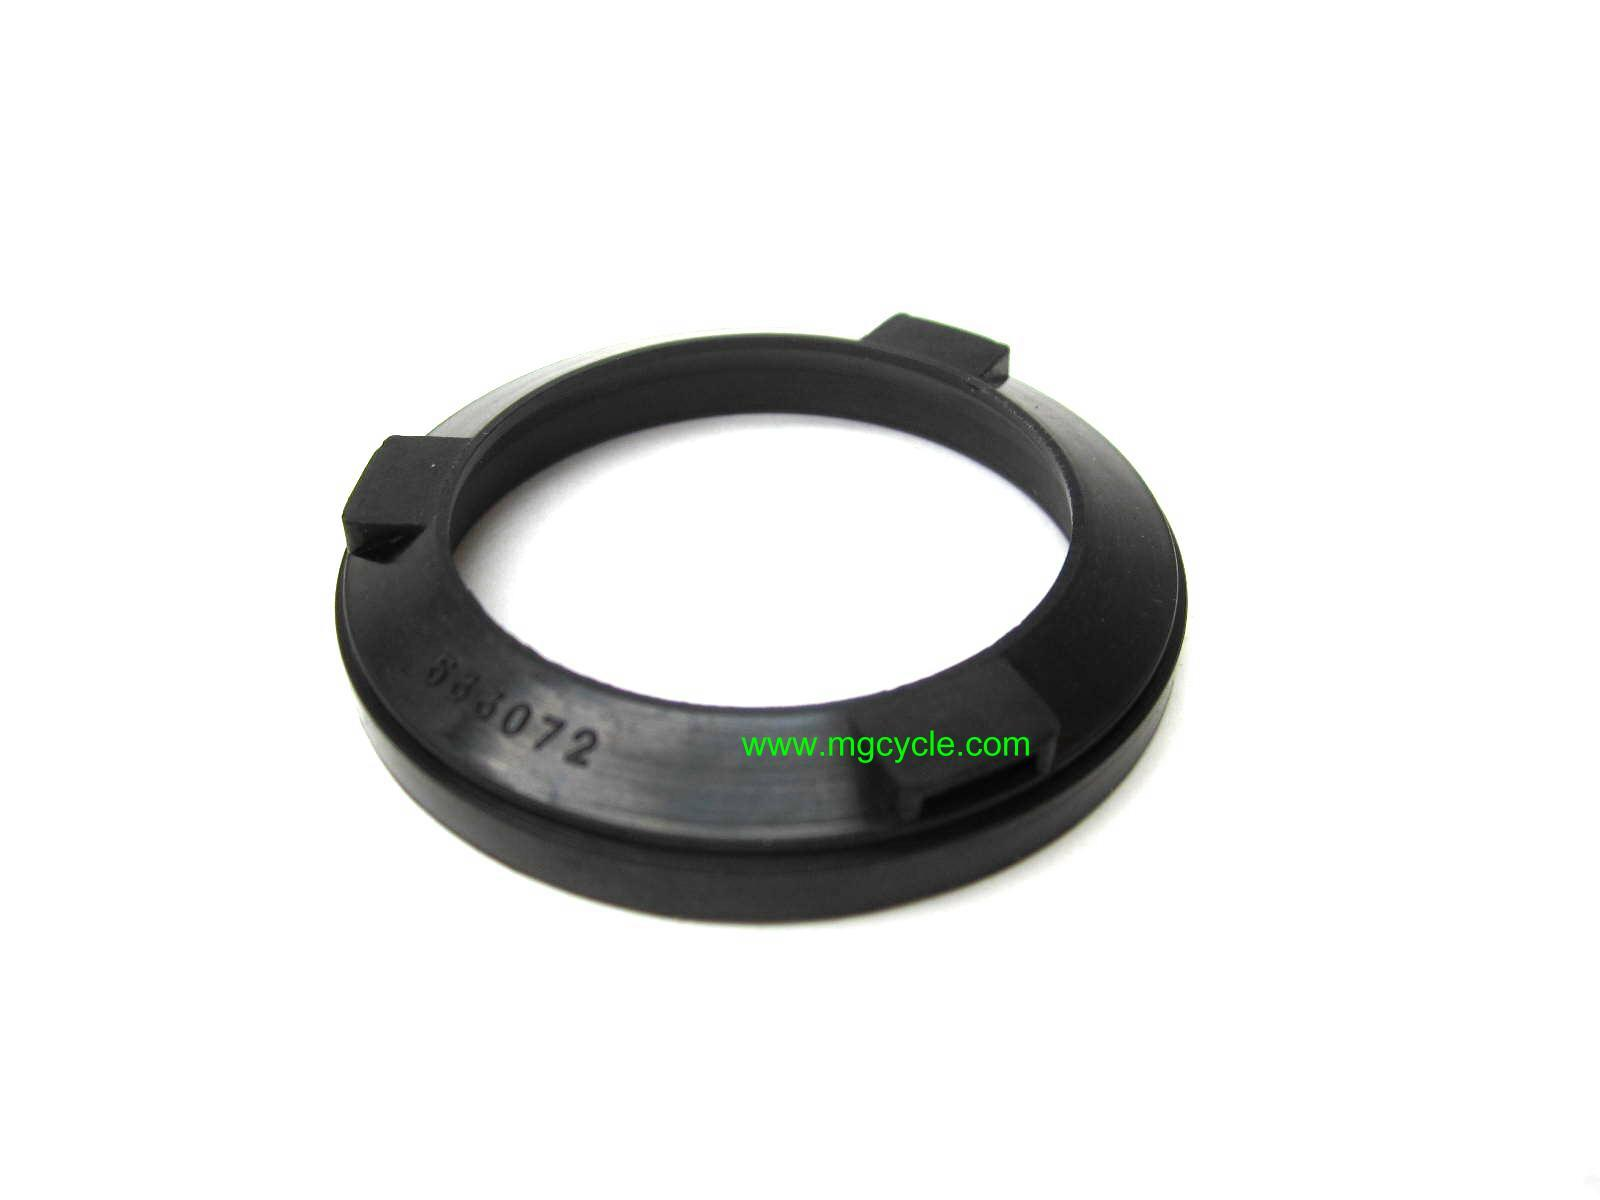 Fork wiper ring, dust cap Cal3 LM5 Cal 1100 SP3 1000S GU29524550